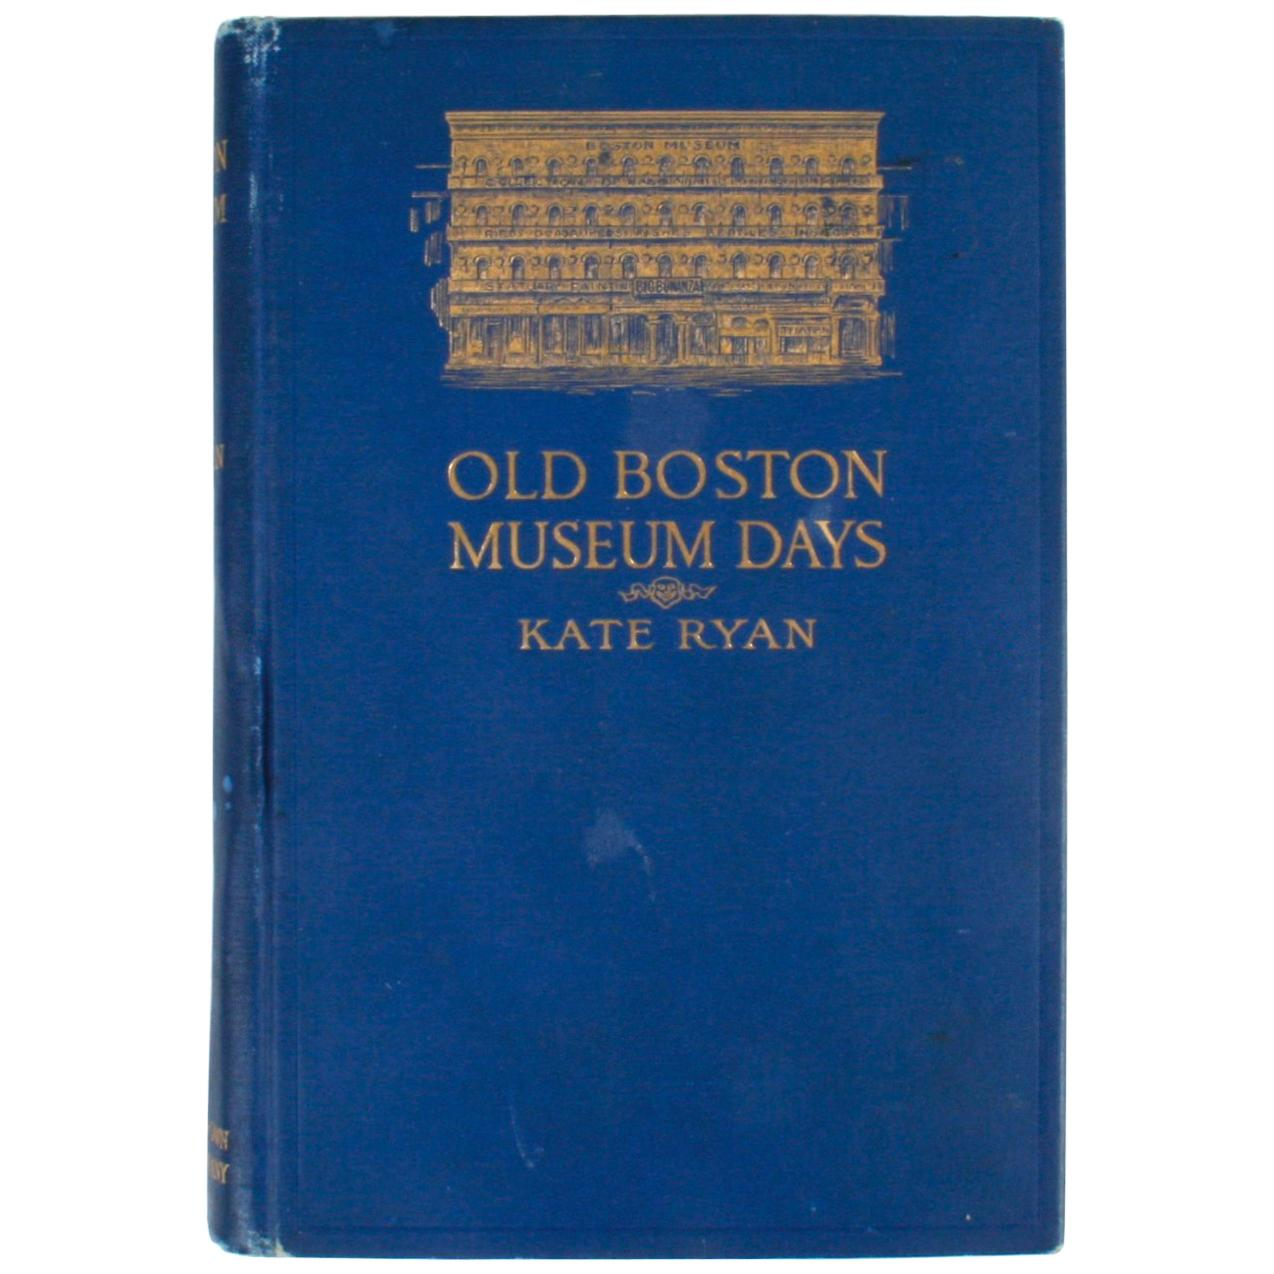 Old Boston Museum Days by Kate Ryan, First Edition